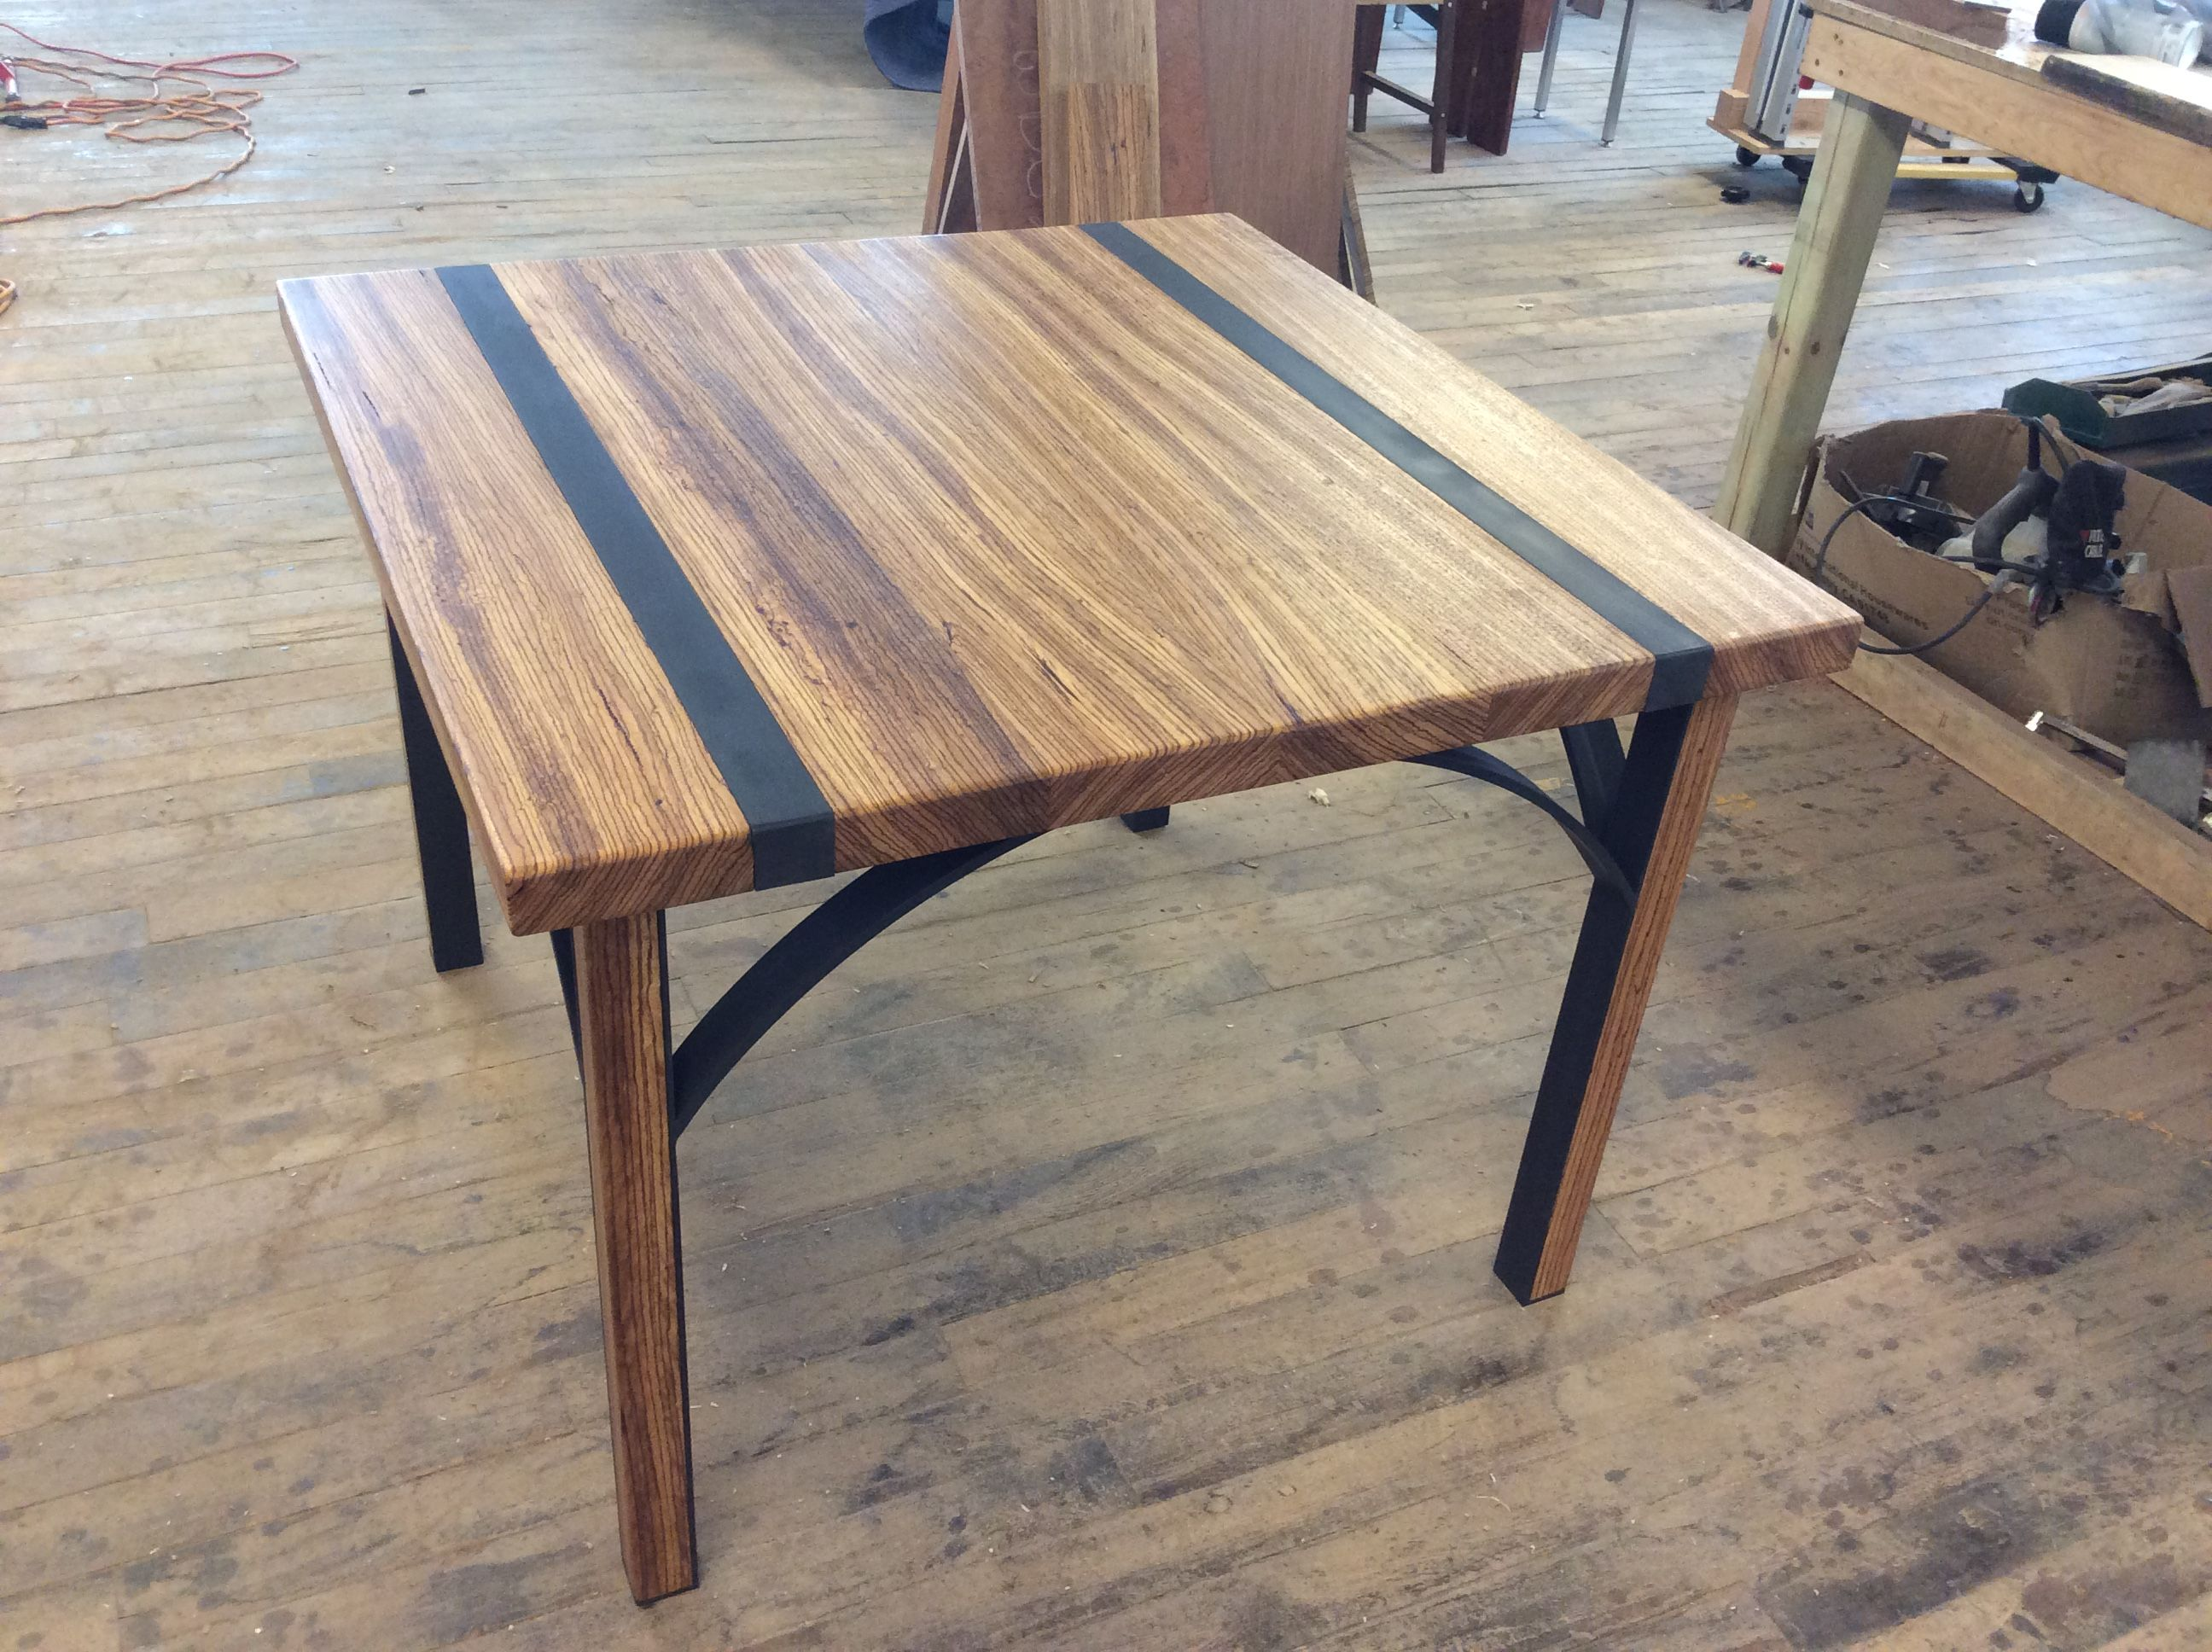 Hand made zebra wood dining table by donald mee designs